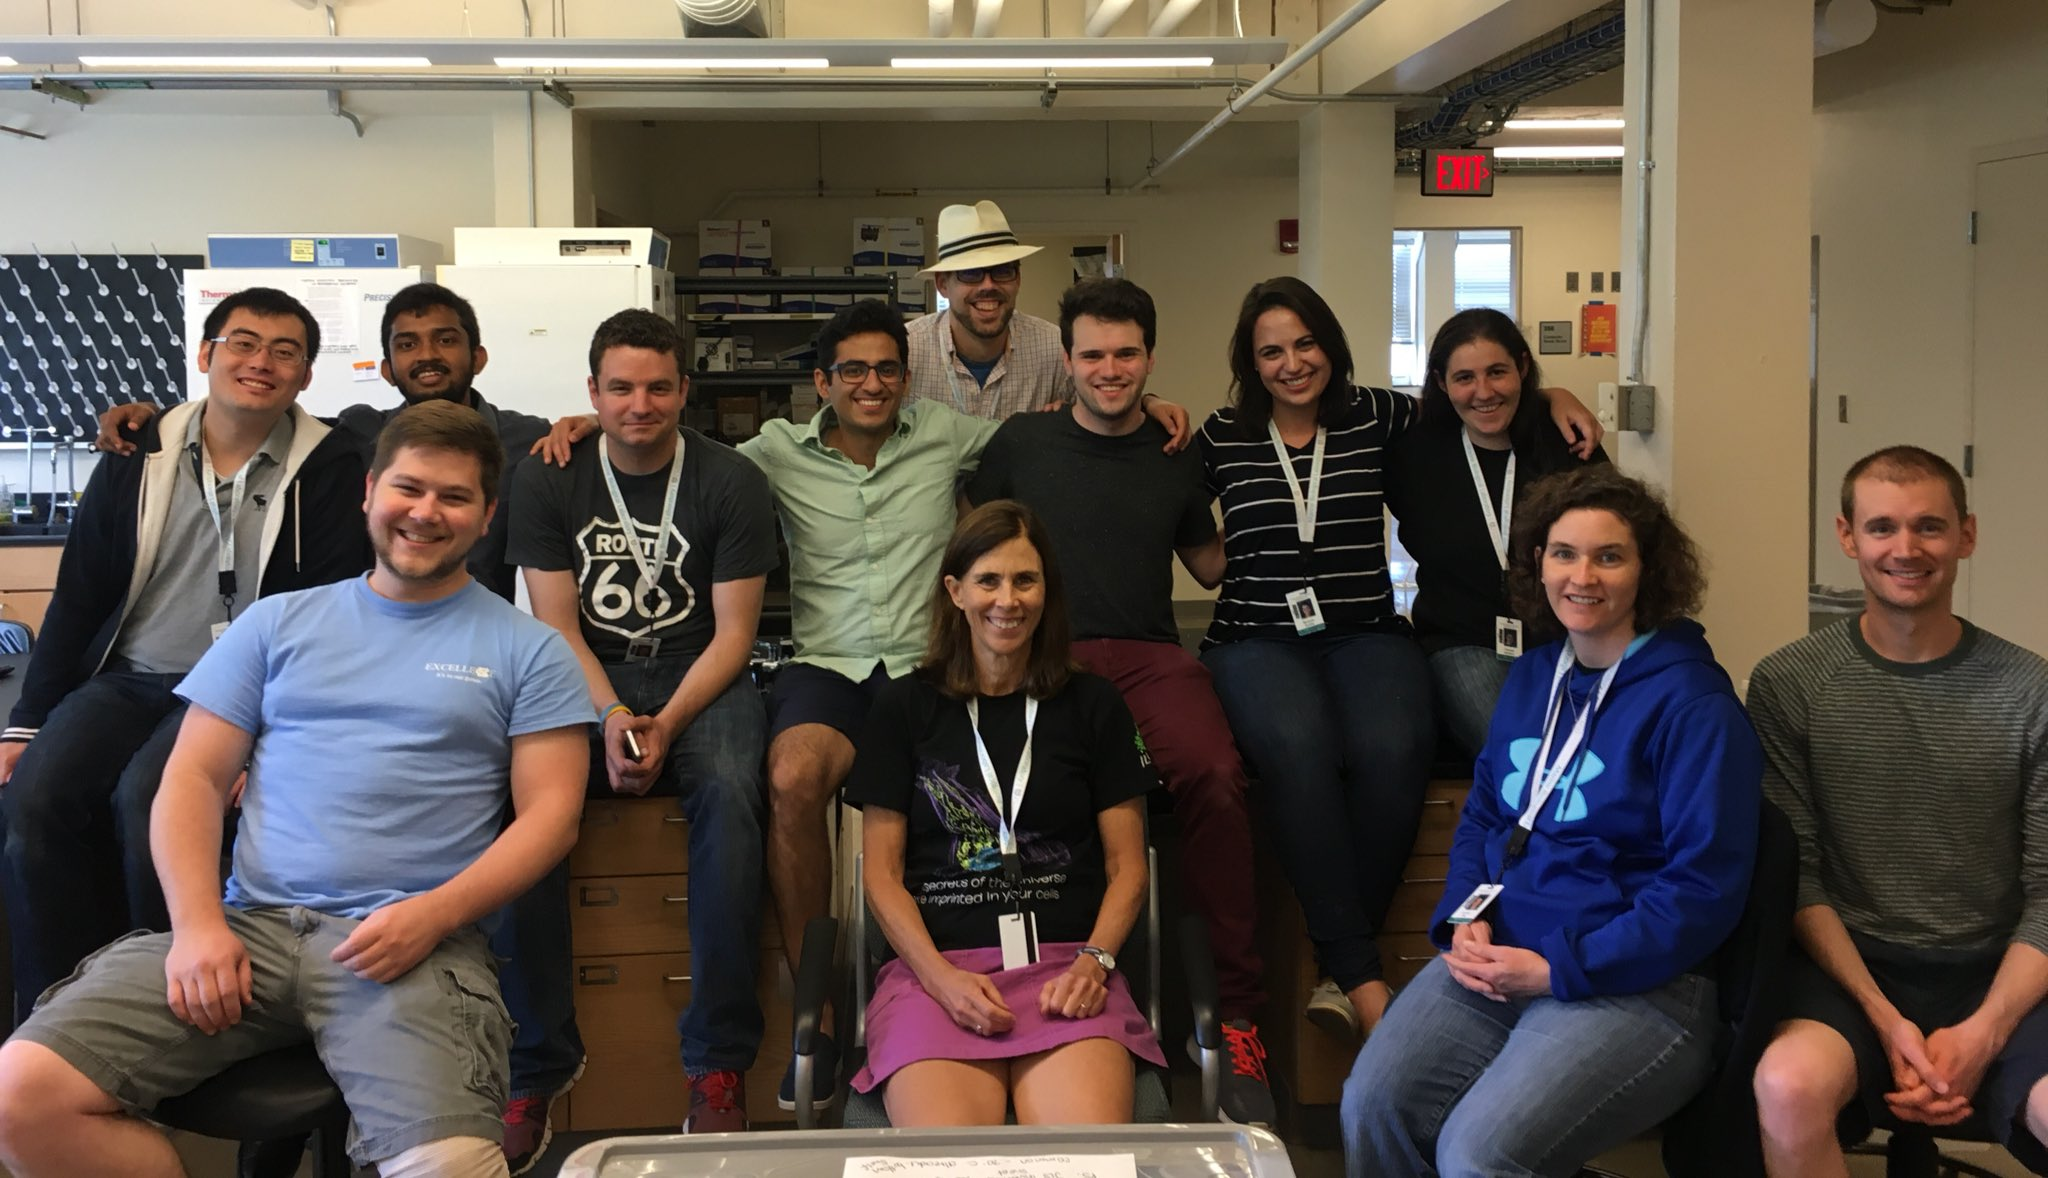 [most of] Team JLS - end of Rotation 1! @MBLScience #physio2017 https://t.co/XpNLeZ7ST6